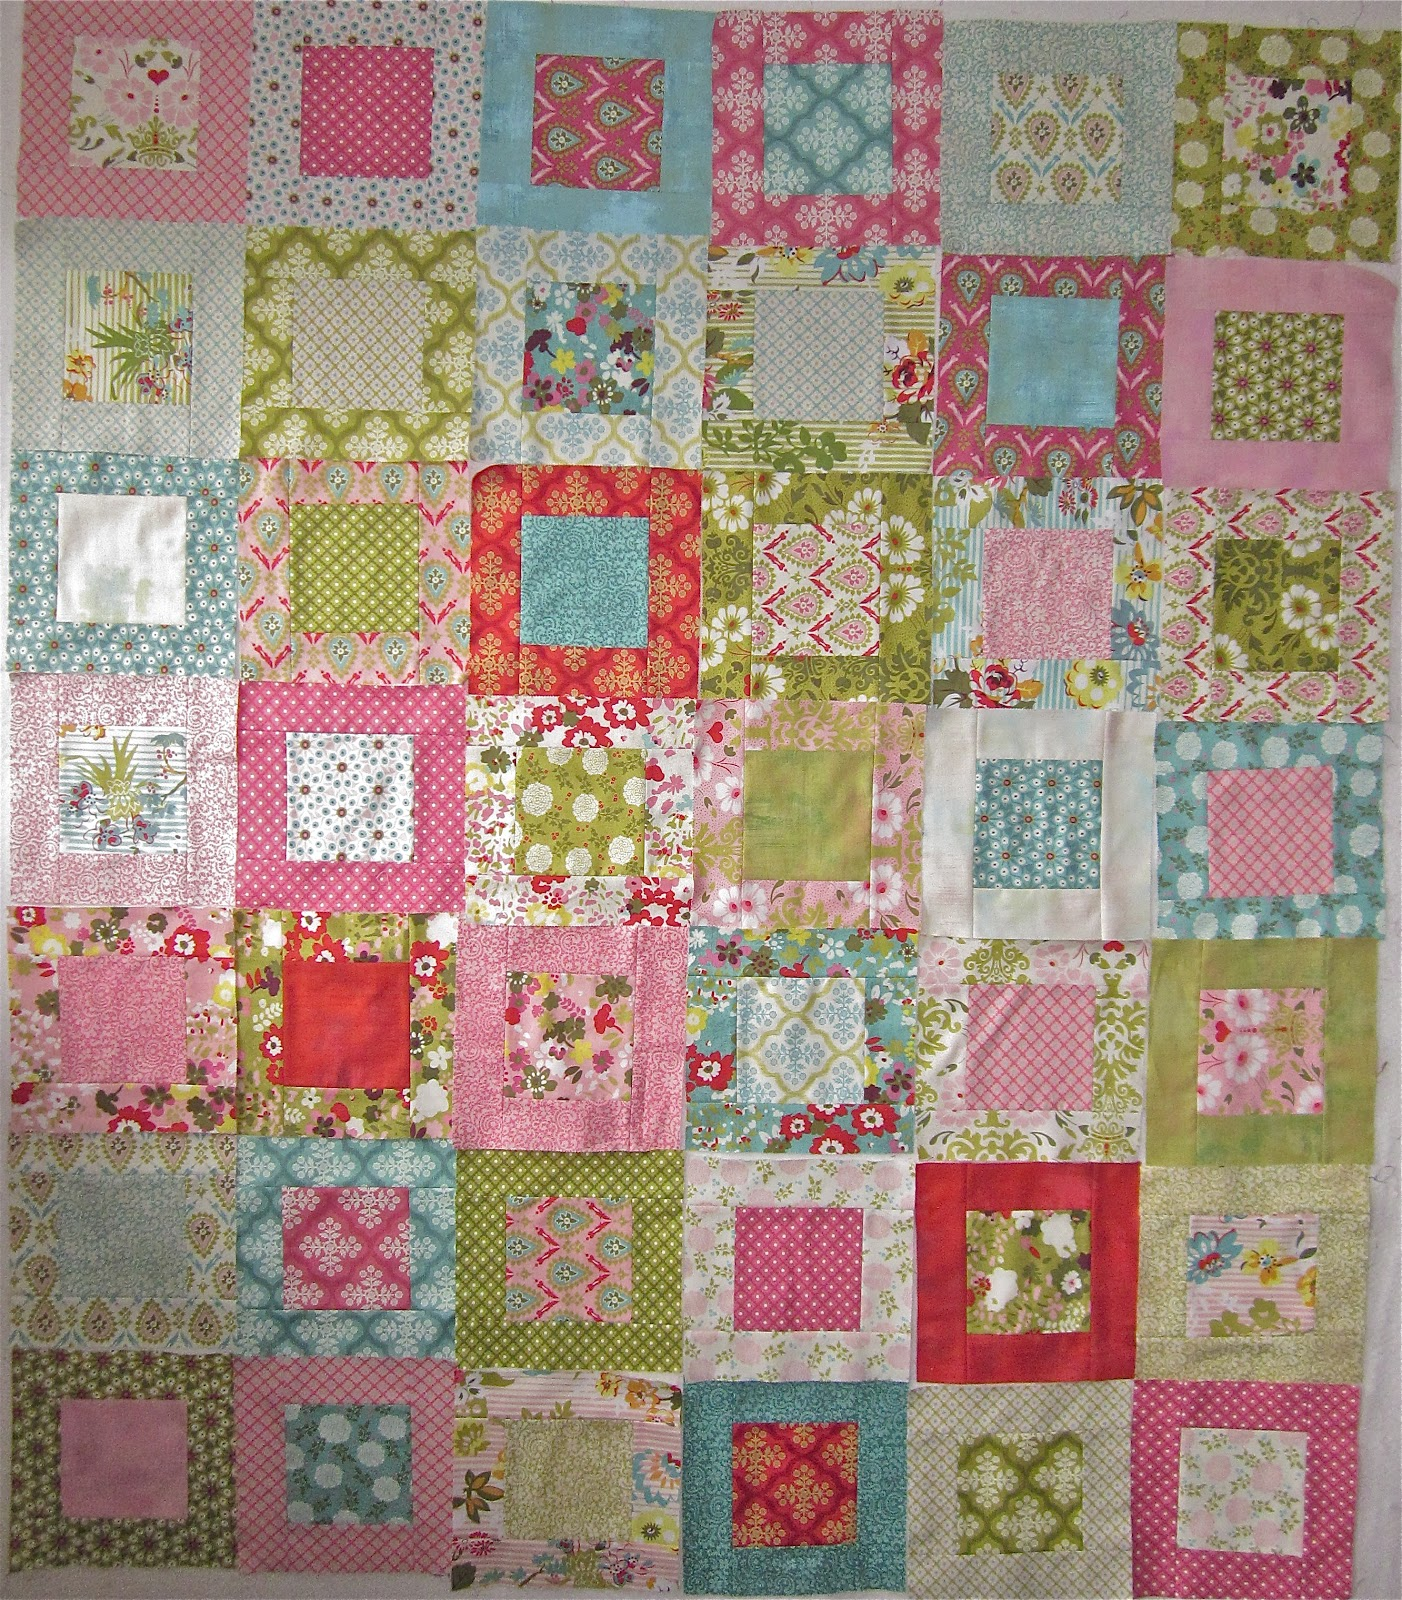 Layer Cake Quilt As You Go : Ann Ferguson Quilts: Hello Luscious Layer Cake Quilt Tutorial